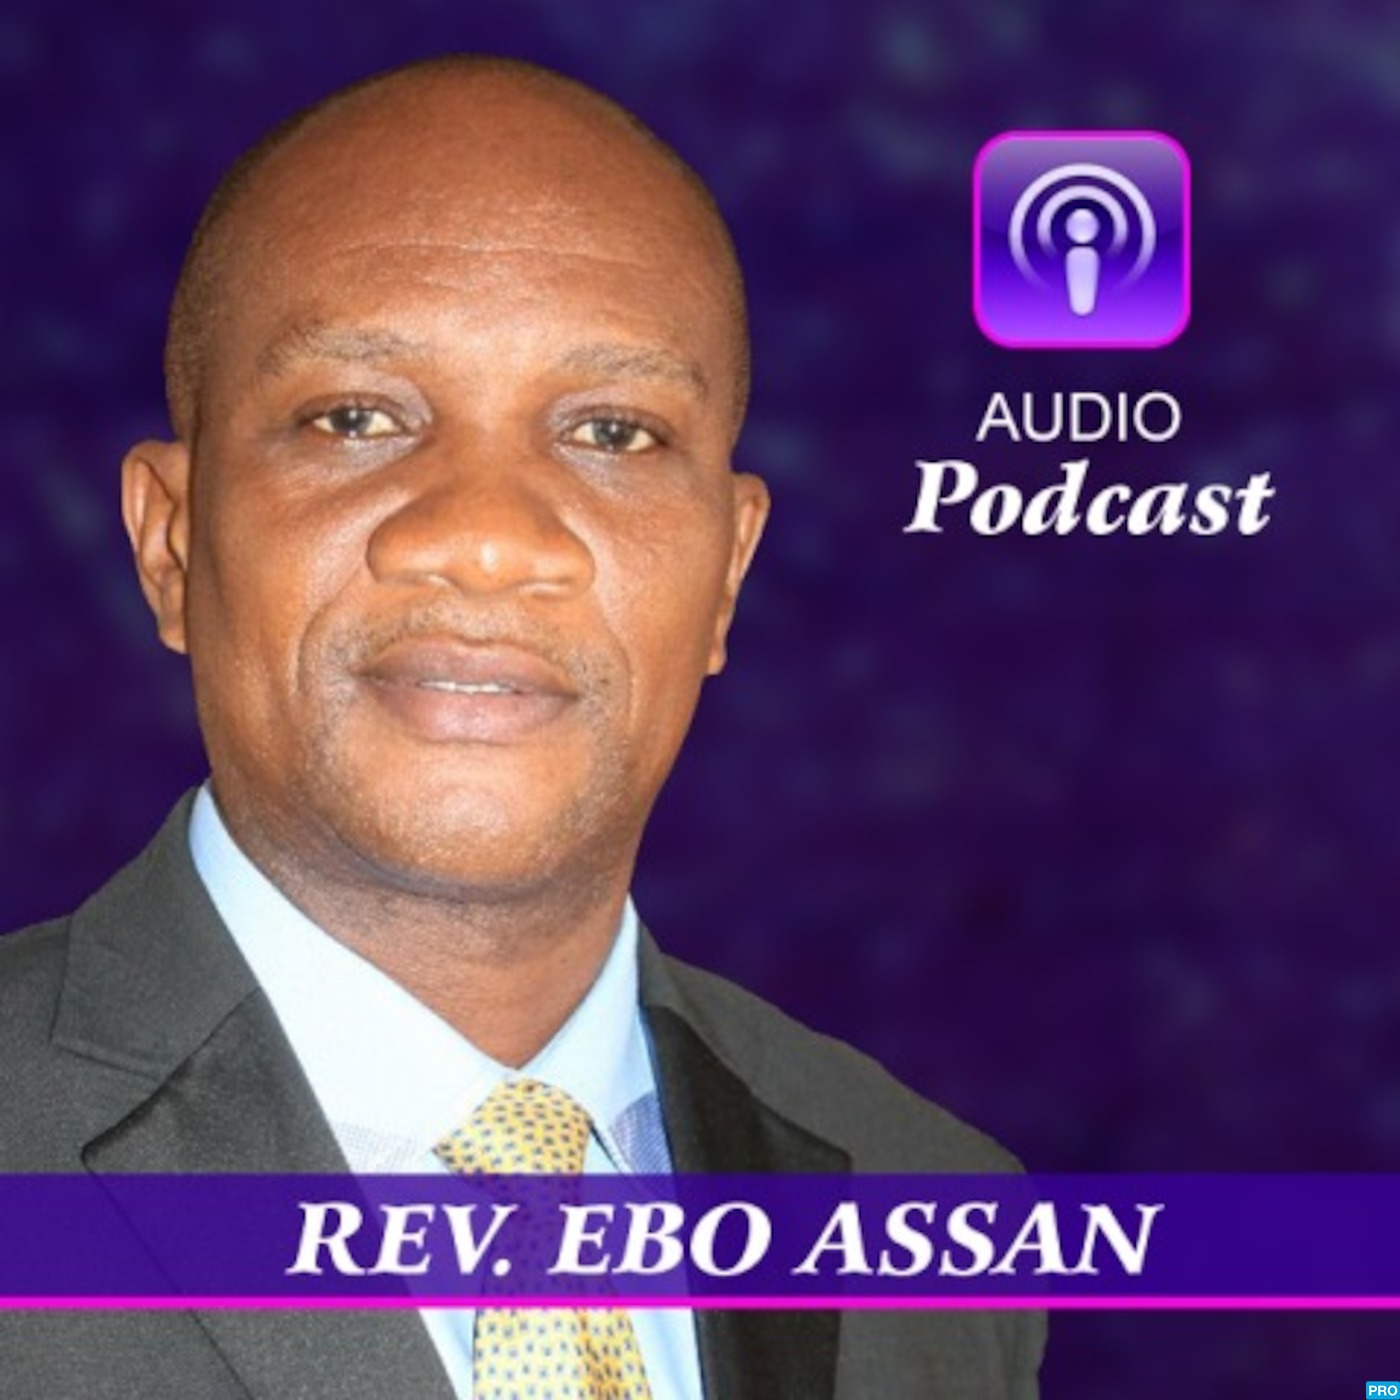 REV. EBO ASSAN's Podcast